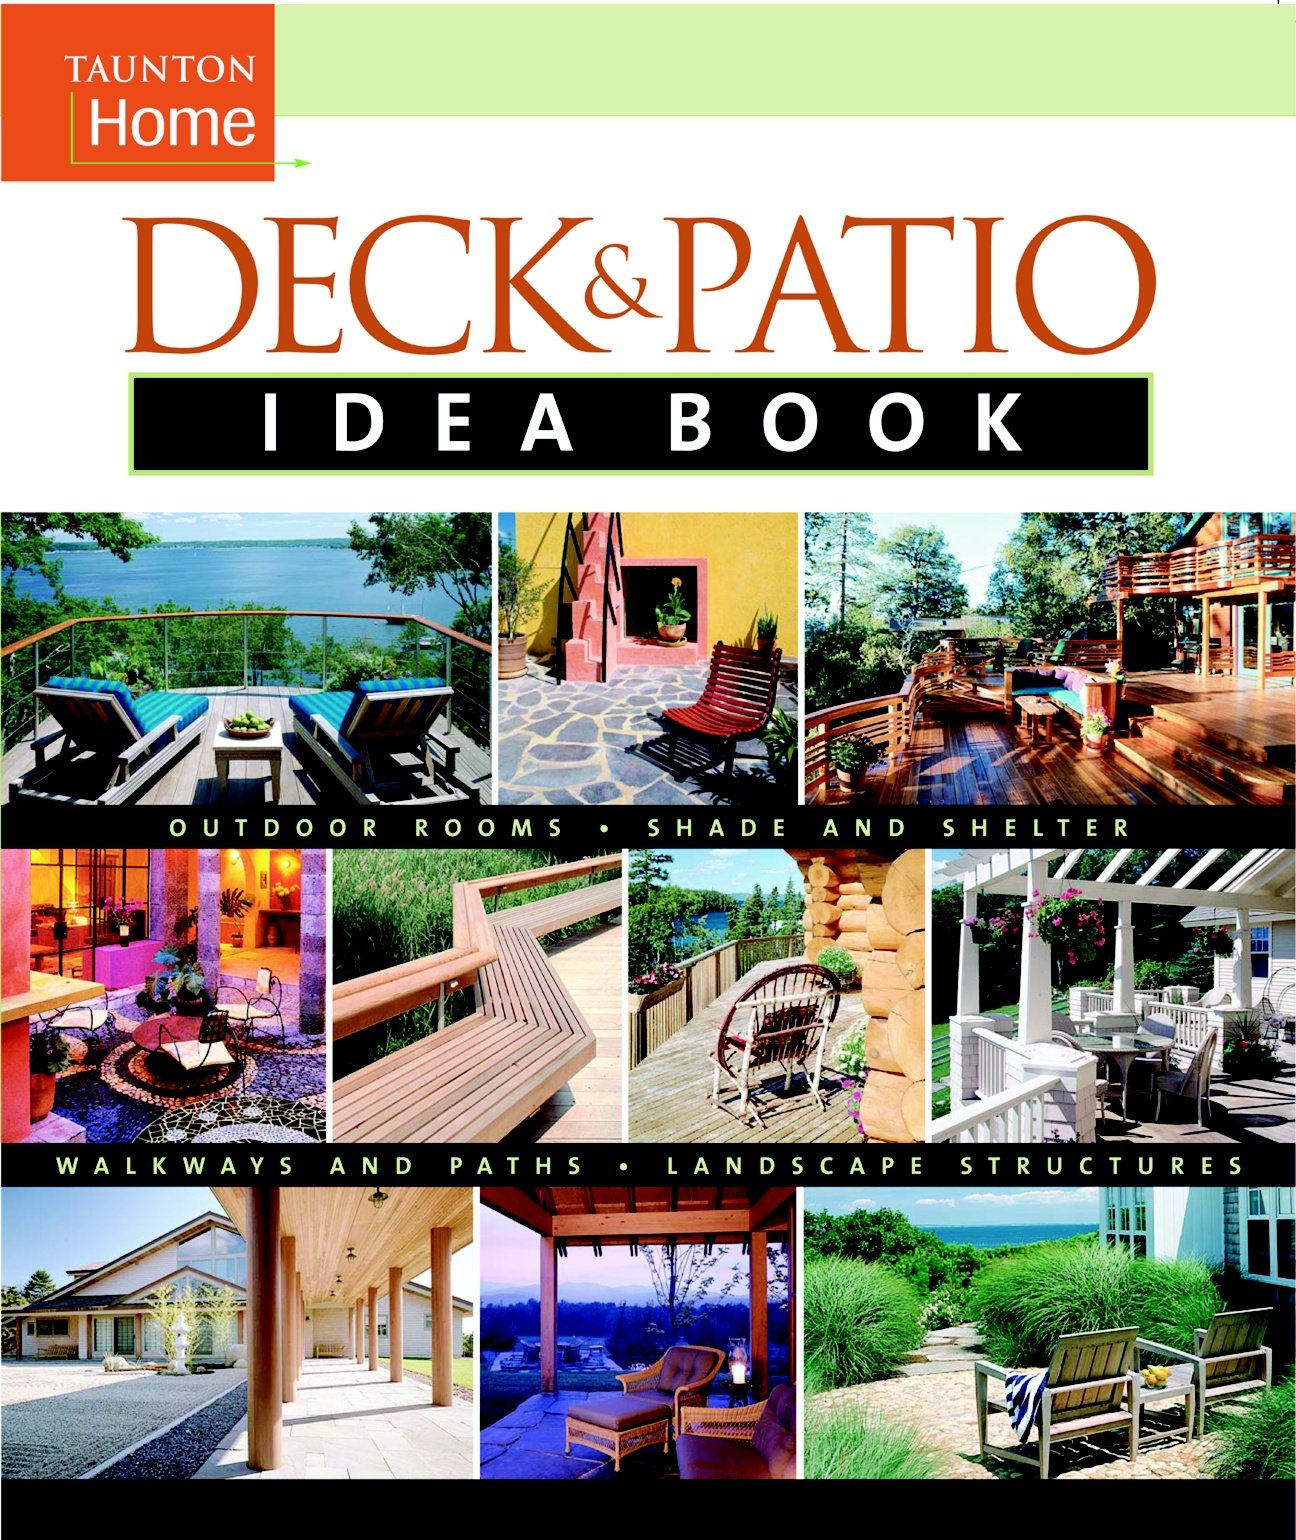 Deck & Patio Idea Book: Outdoor Rooms•Shade and Shelter•Walkways and Pat  (Taunton Home Idea Books): Julie Stillman, Jane Gitlin: 9781561586394:  Amazon.com: ...